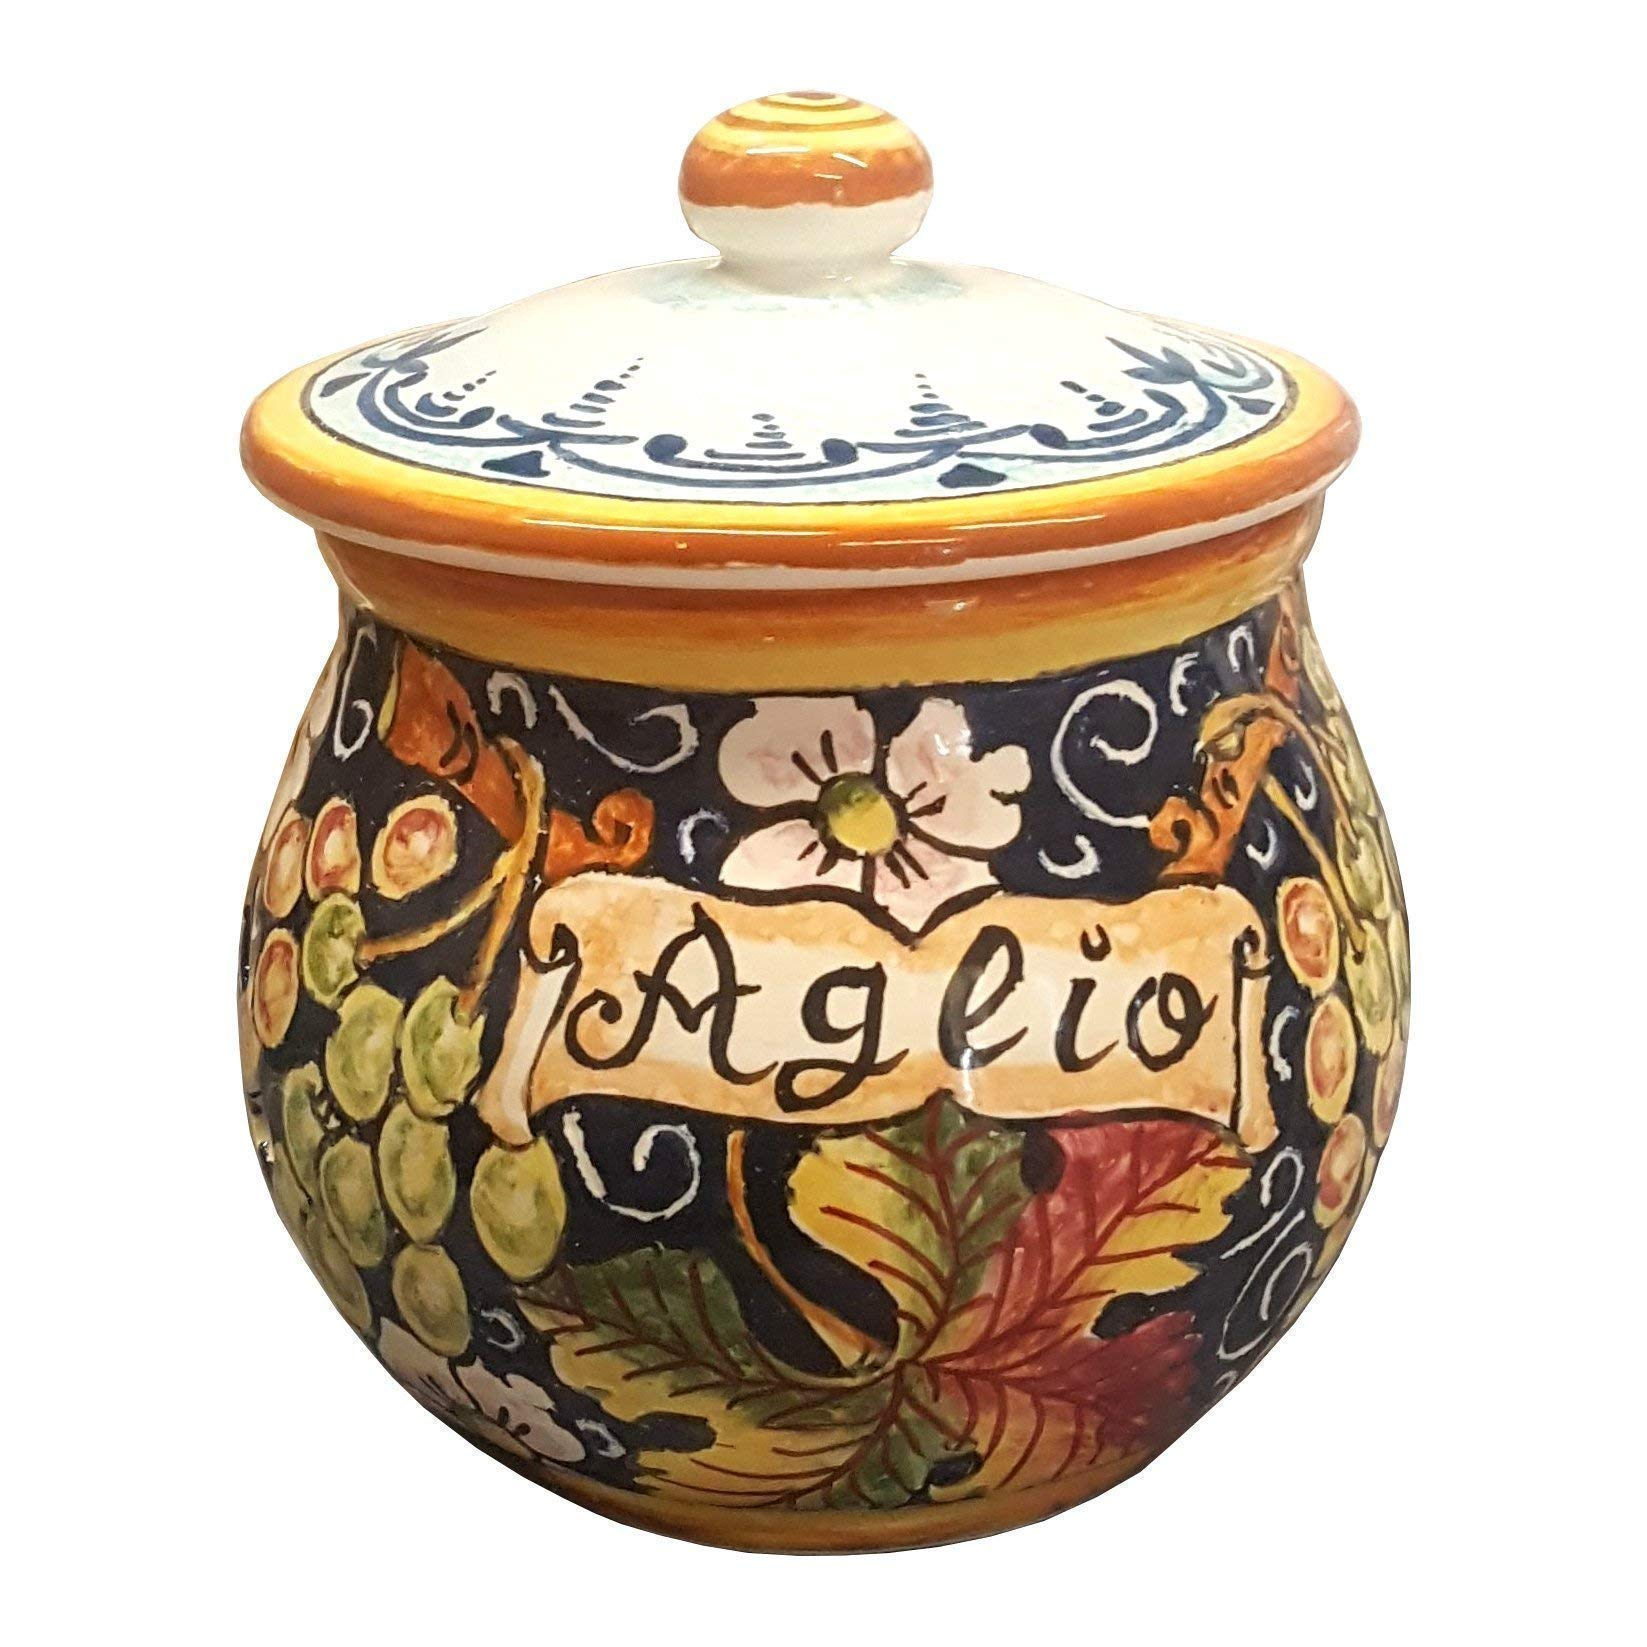 CERAMICHE D'ARTE PARRINI- Italian Ceramic Garlic Brings Jar Holder Hand Painted Made in ITALY Decorated Grape Tuscan Art Pottery by CERAMICHE D'ARTE PARRINI since 1979 (Image #1)